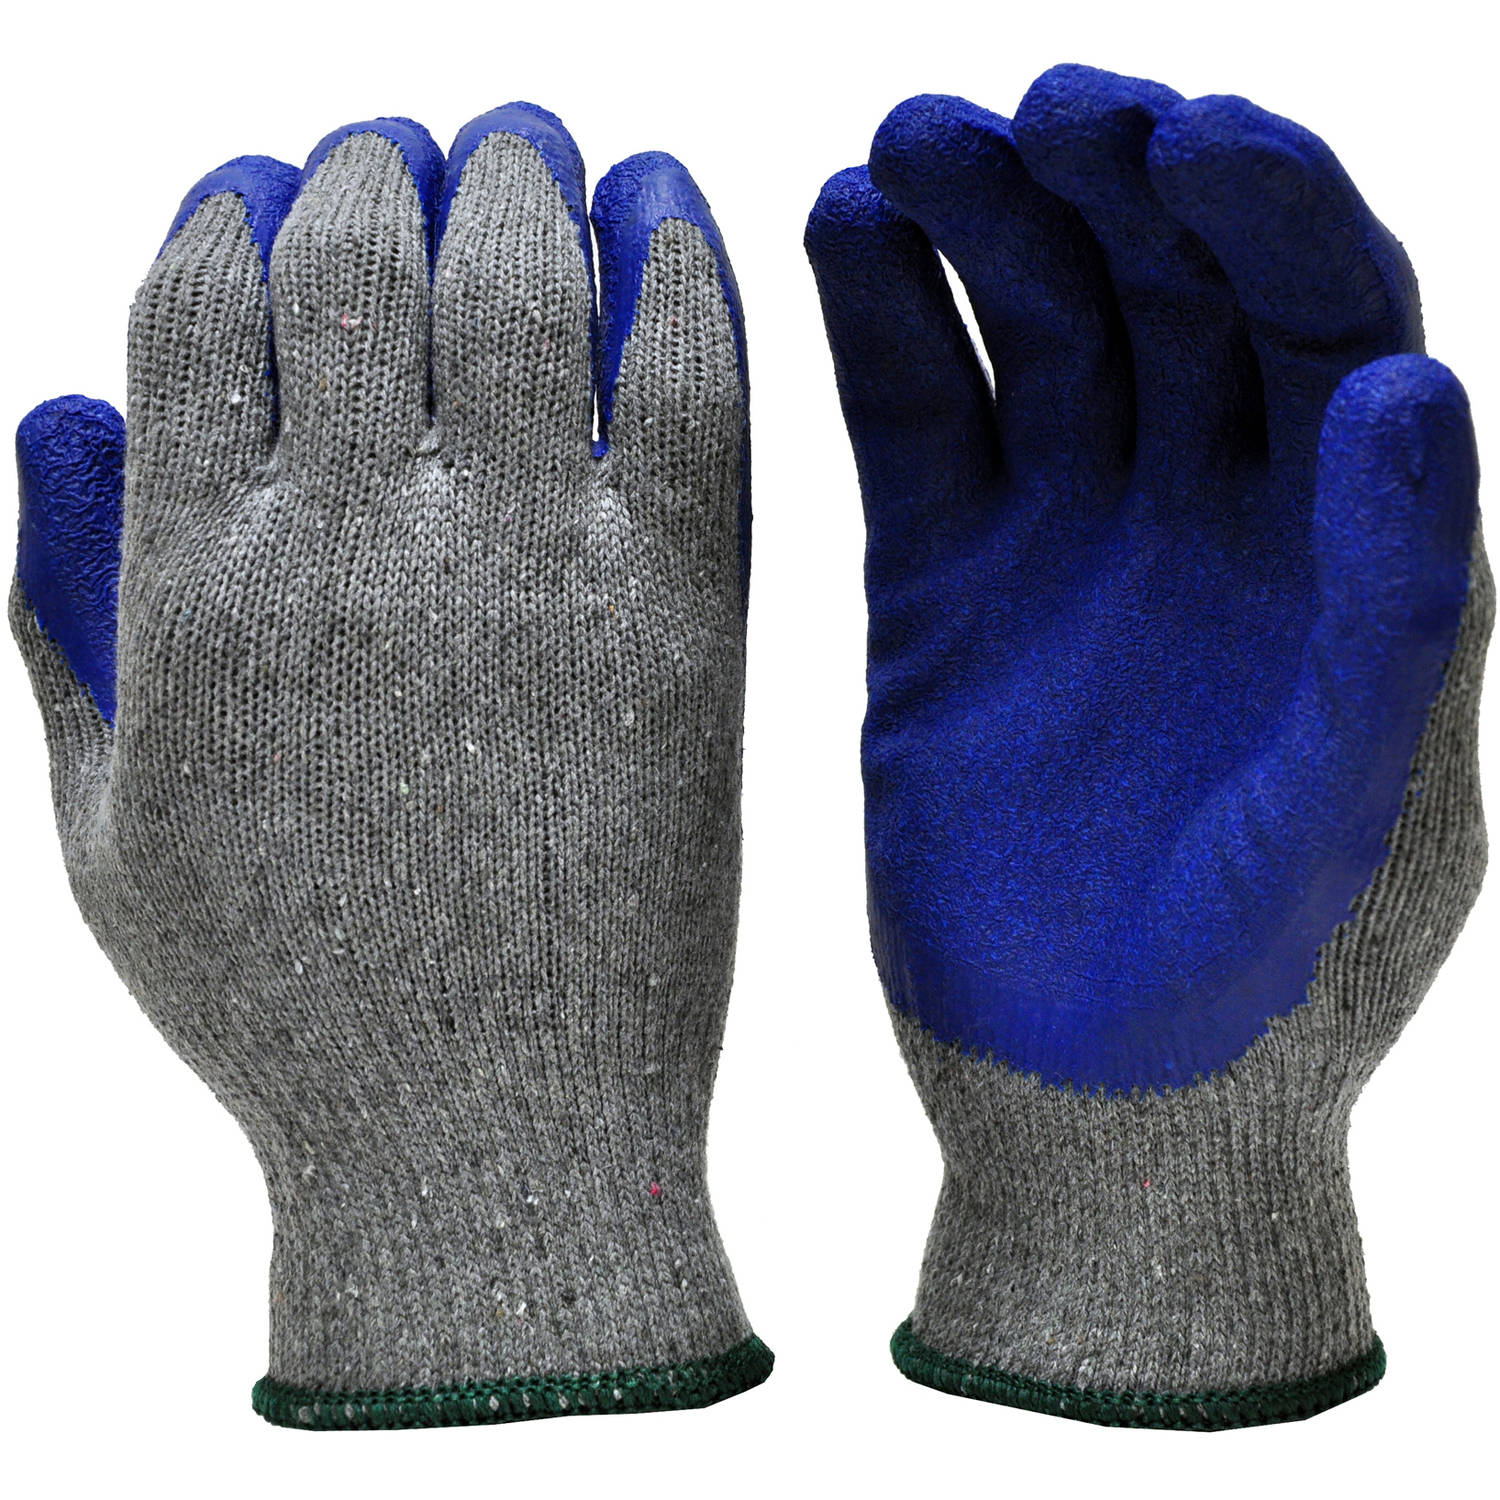 G & F 3100S-DZ Knit Work Gloves, Textured Rubber Latex Coated for Construction, 12-Pairs, Men's Small